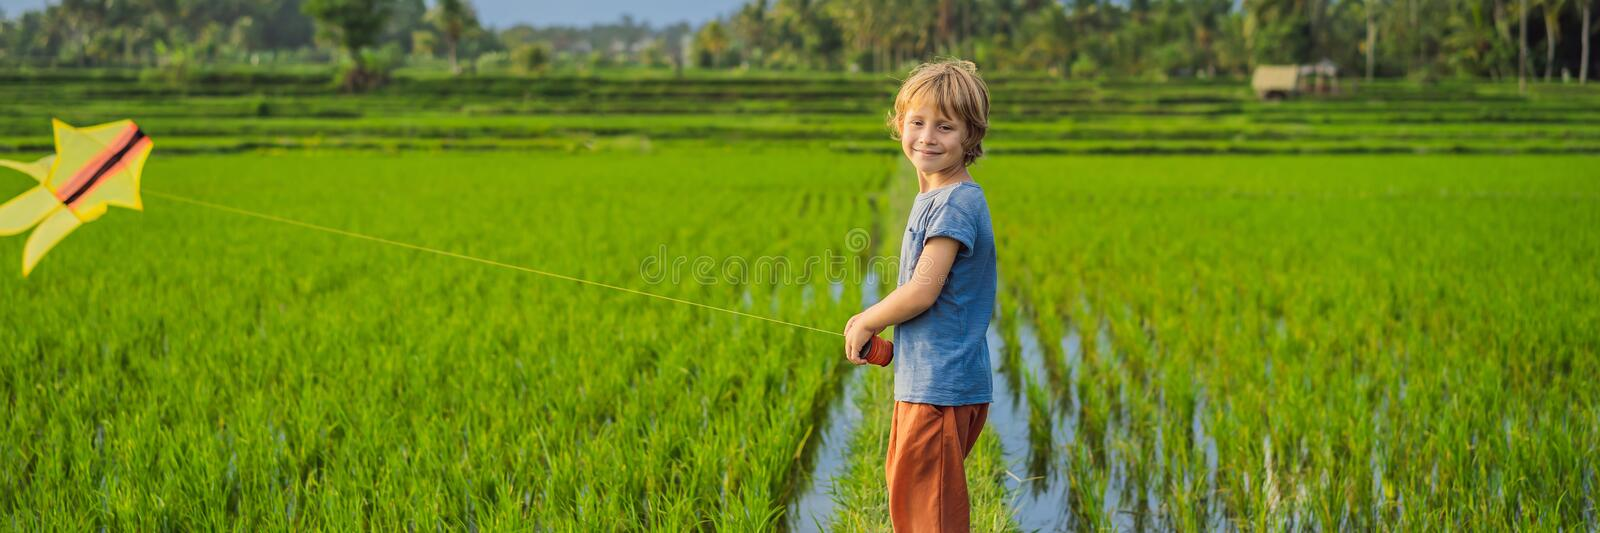 Tourist boy launches a kite in a rice field. Traveling with children concept. Kids friendly place BANNER, LONG FORMAT royalty free stock image